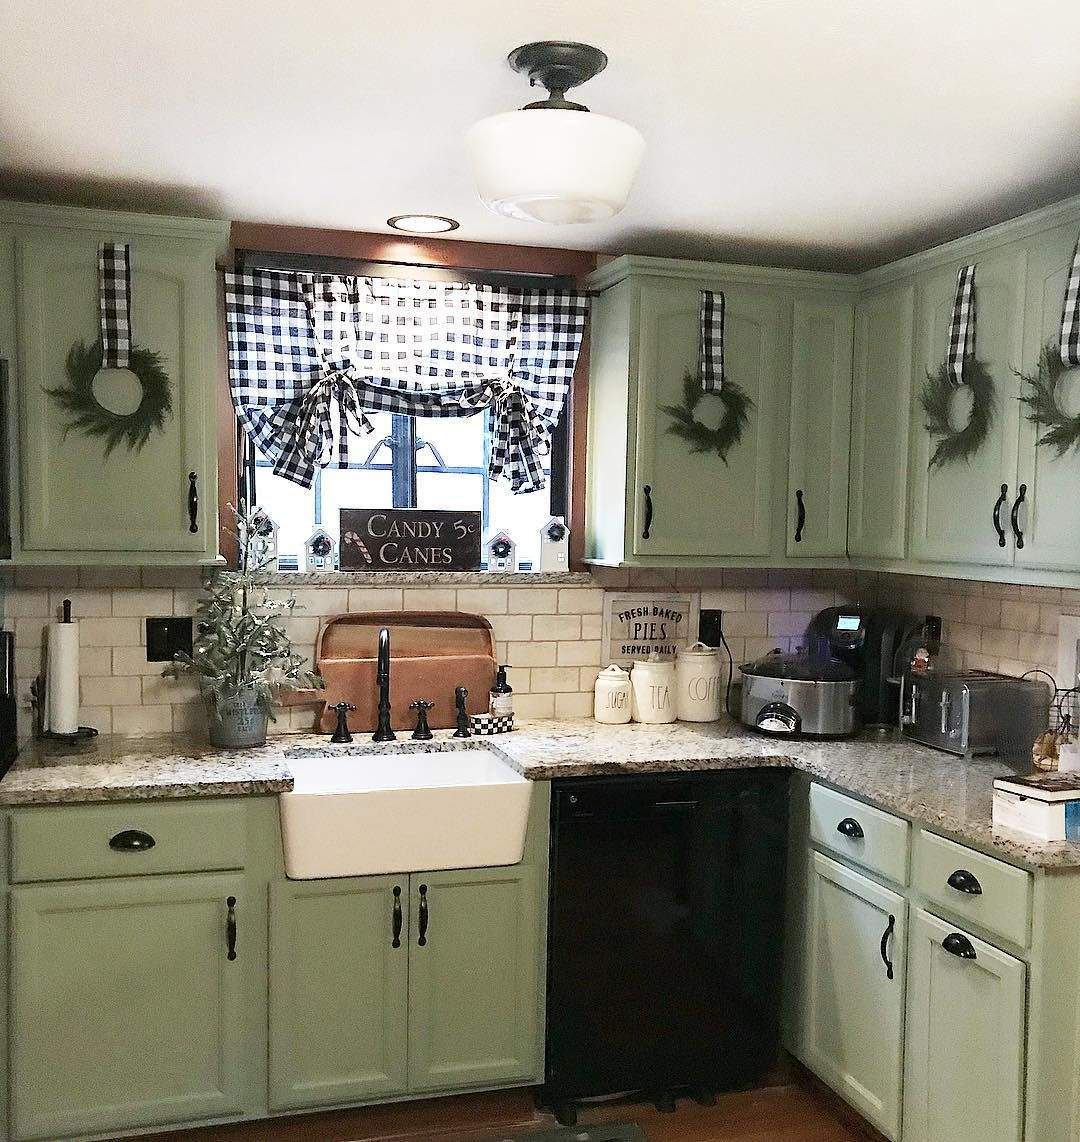 Heather On Instagram Thank You Liz From Casagrella For The Most Adorable Idea With The Targetsd New Kitchen Cabinets Country Kitchen Green Kitchen Cabinets